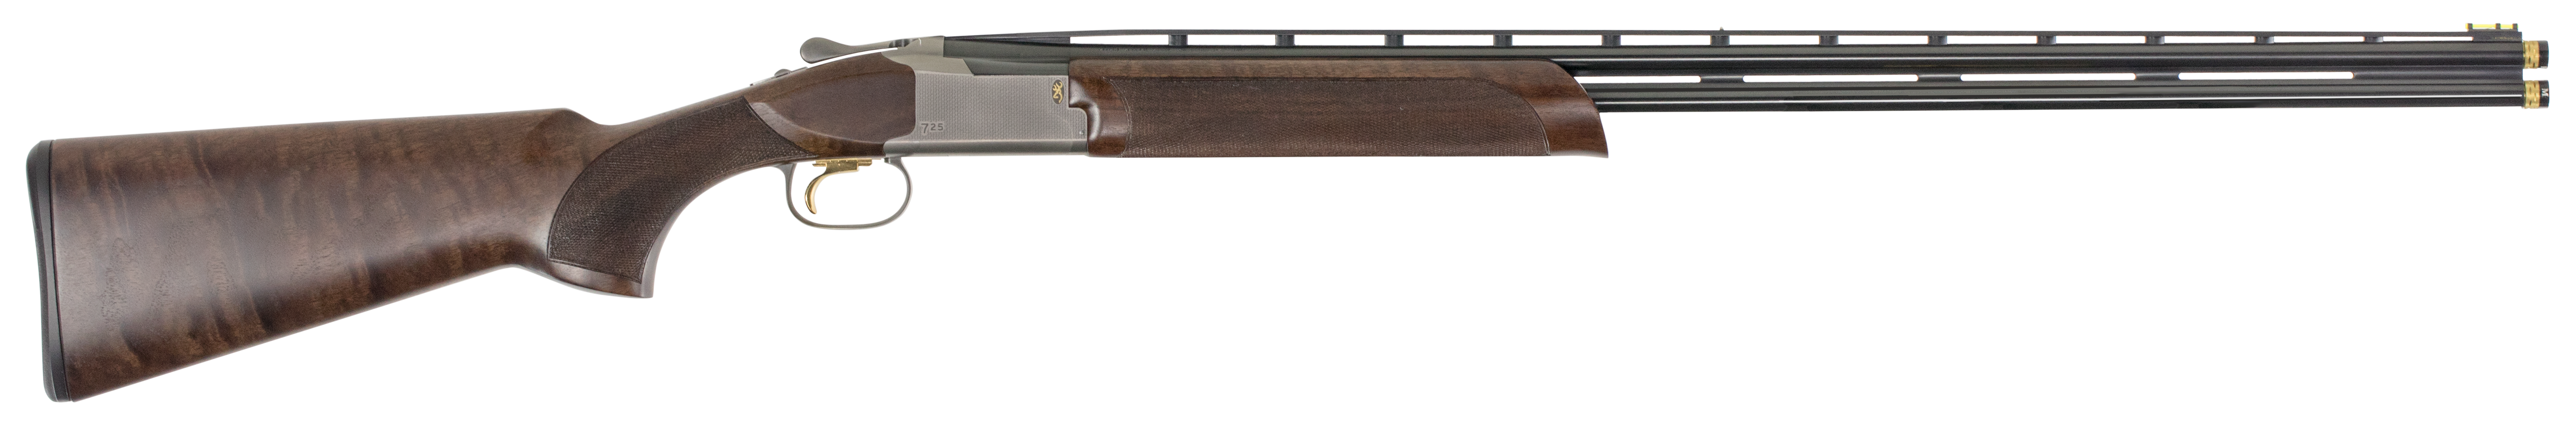 Browning Citori 725 Sporting Over/Under Shotgun 3'' 410 Bore 30'' Silver Nitride Steel - Grade III Gloss/Grade IV Walnut